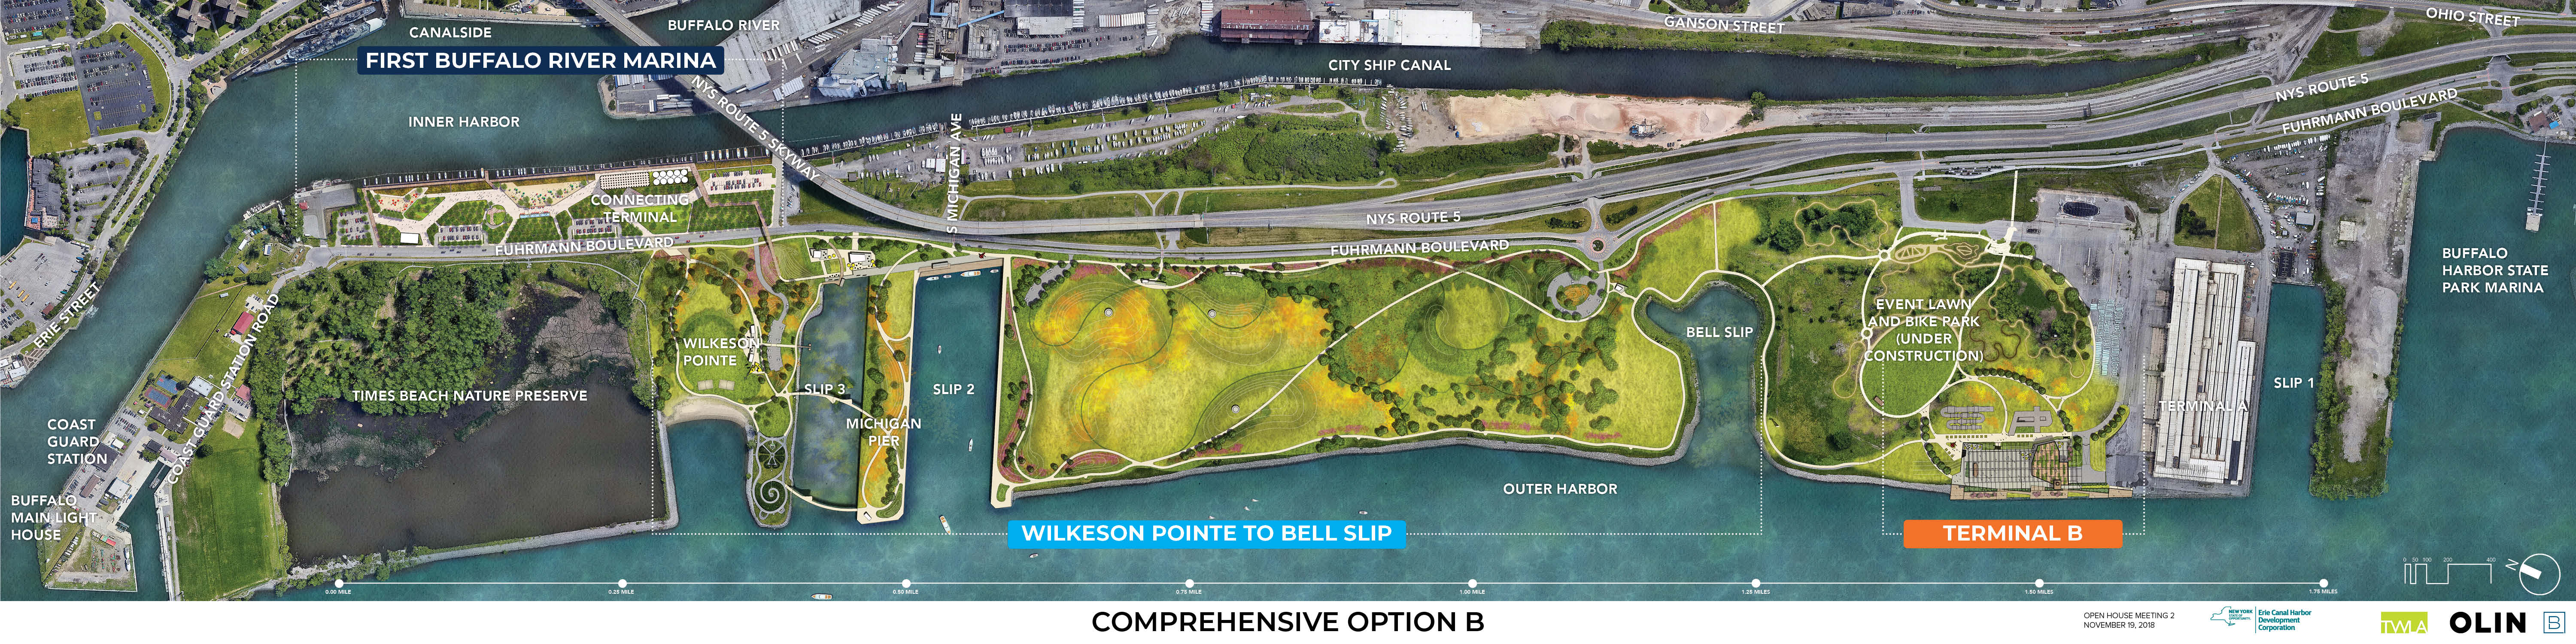 Overall Outer Harbor Capital Plan Option B